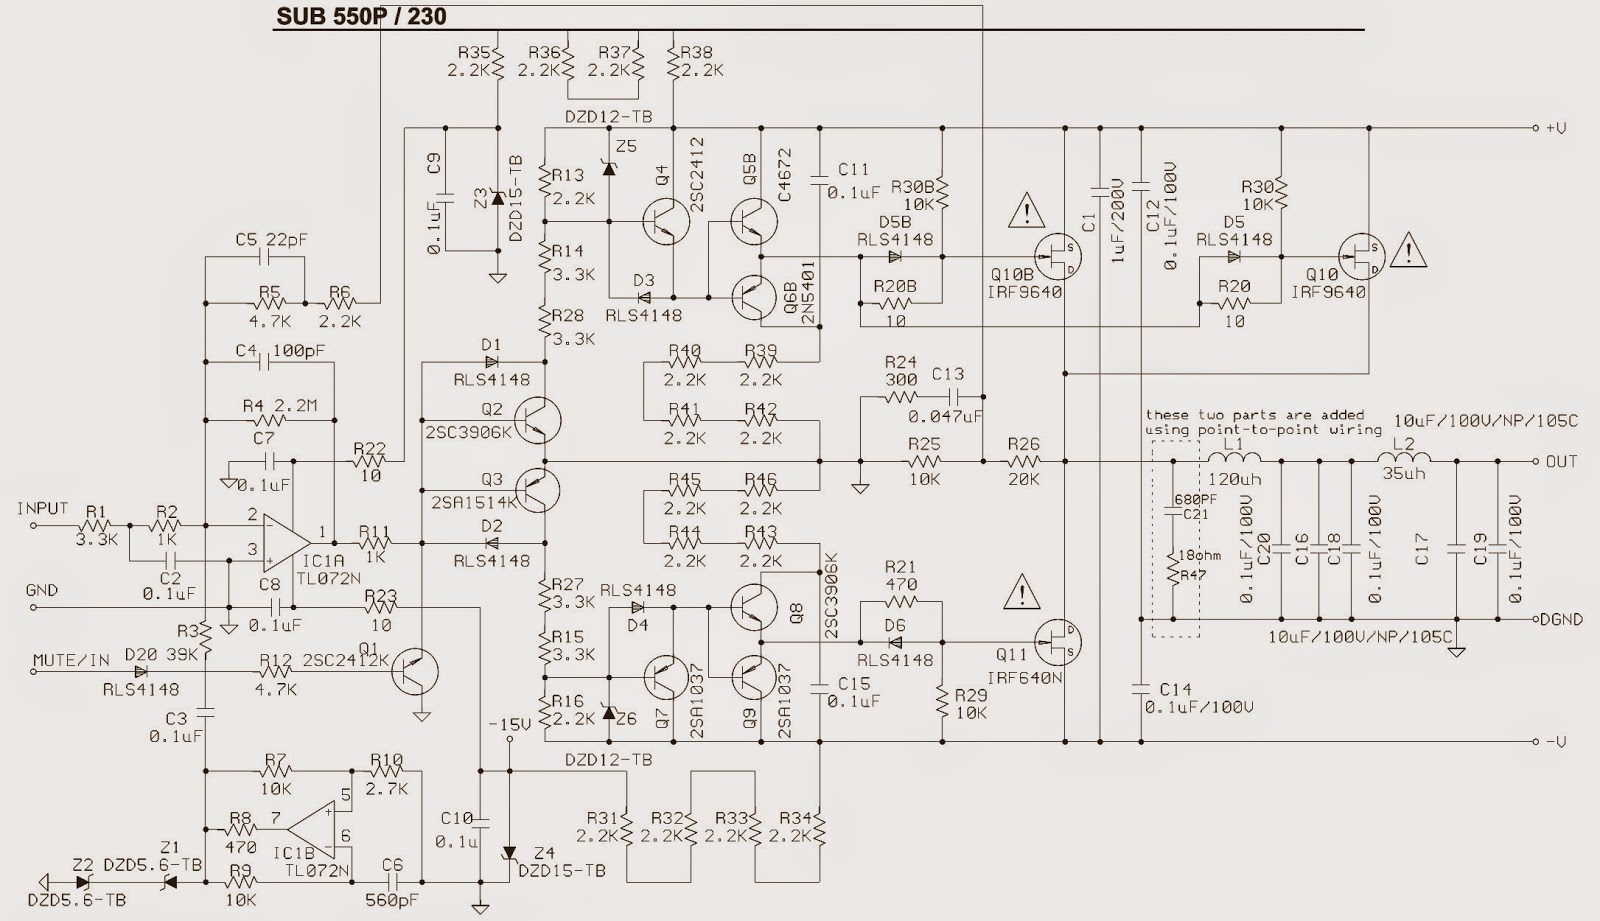 sub550p jbl amplifier sub-woofer - schematic